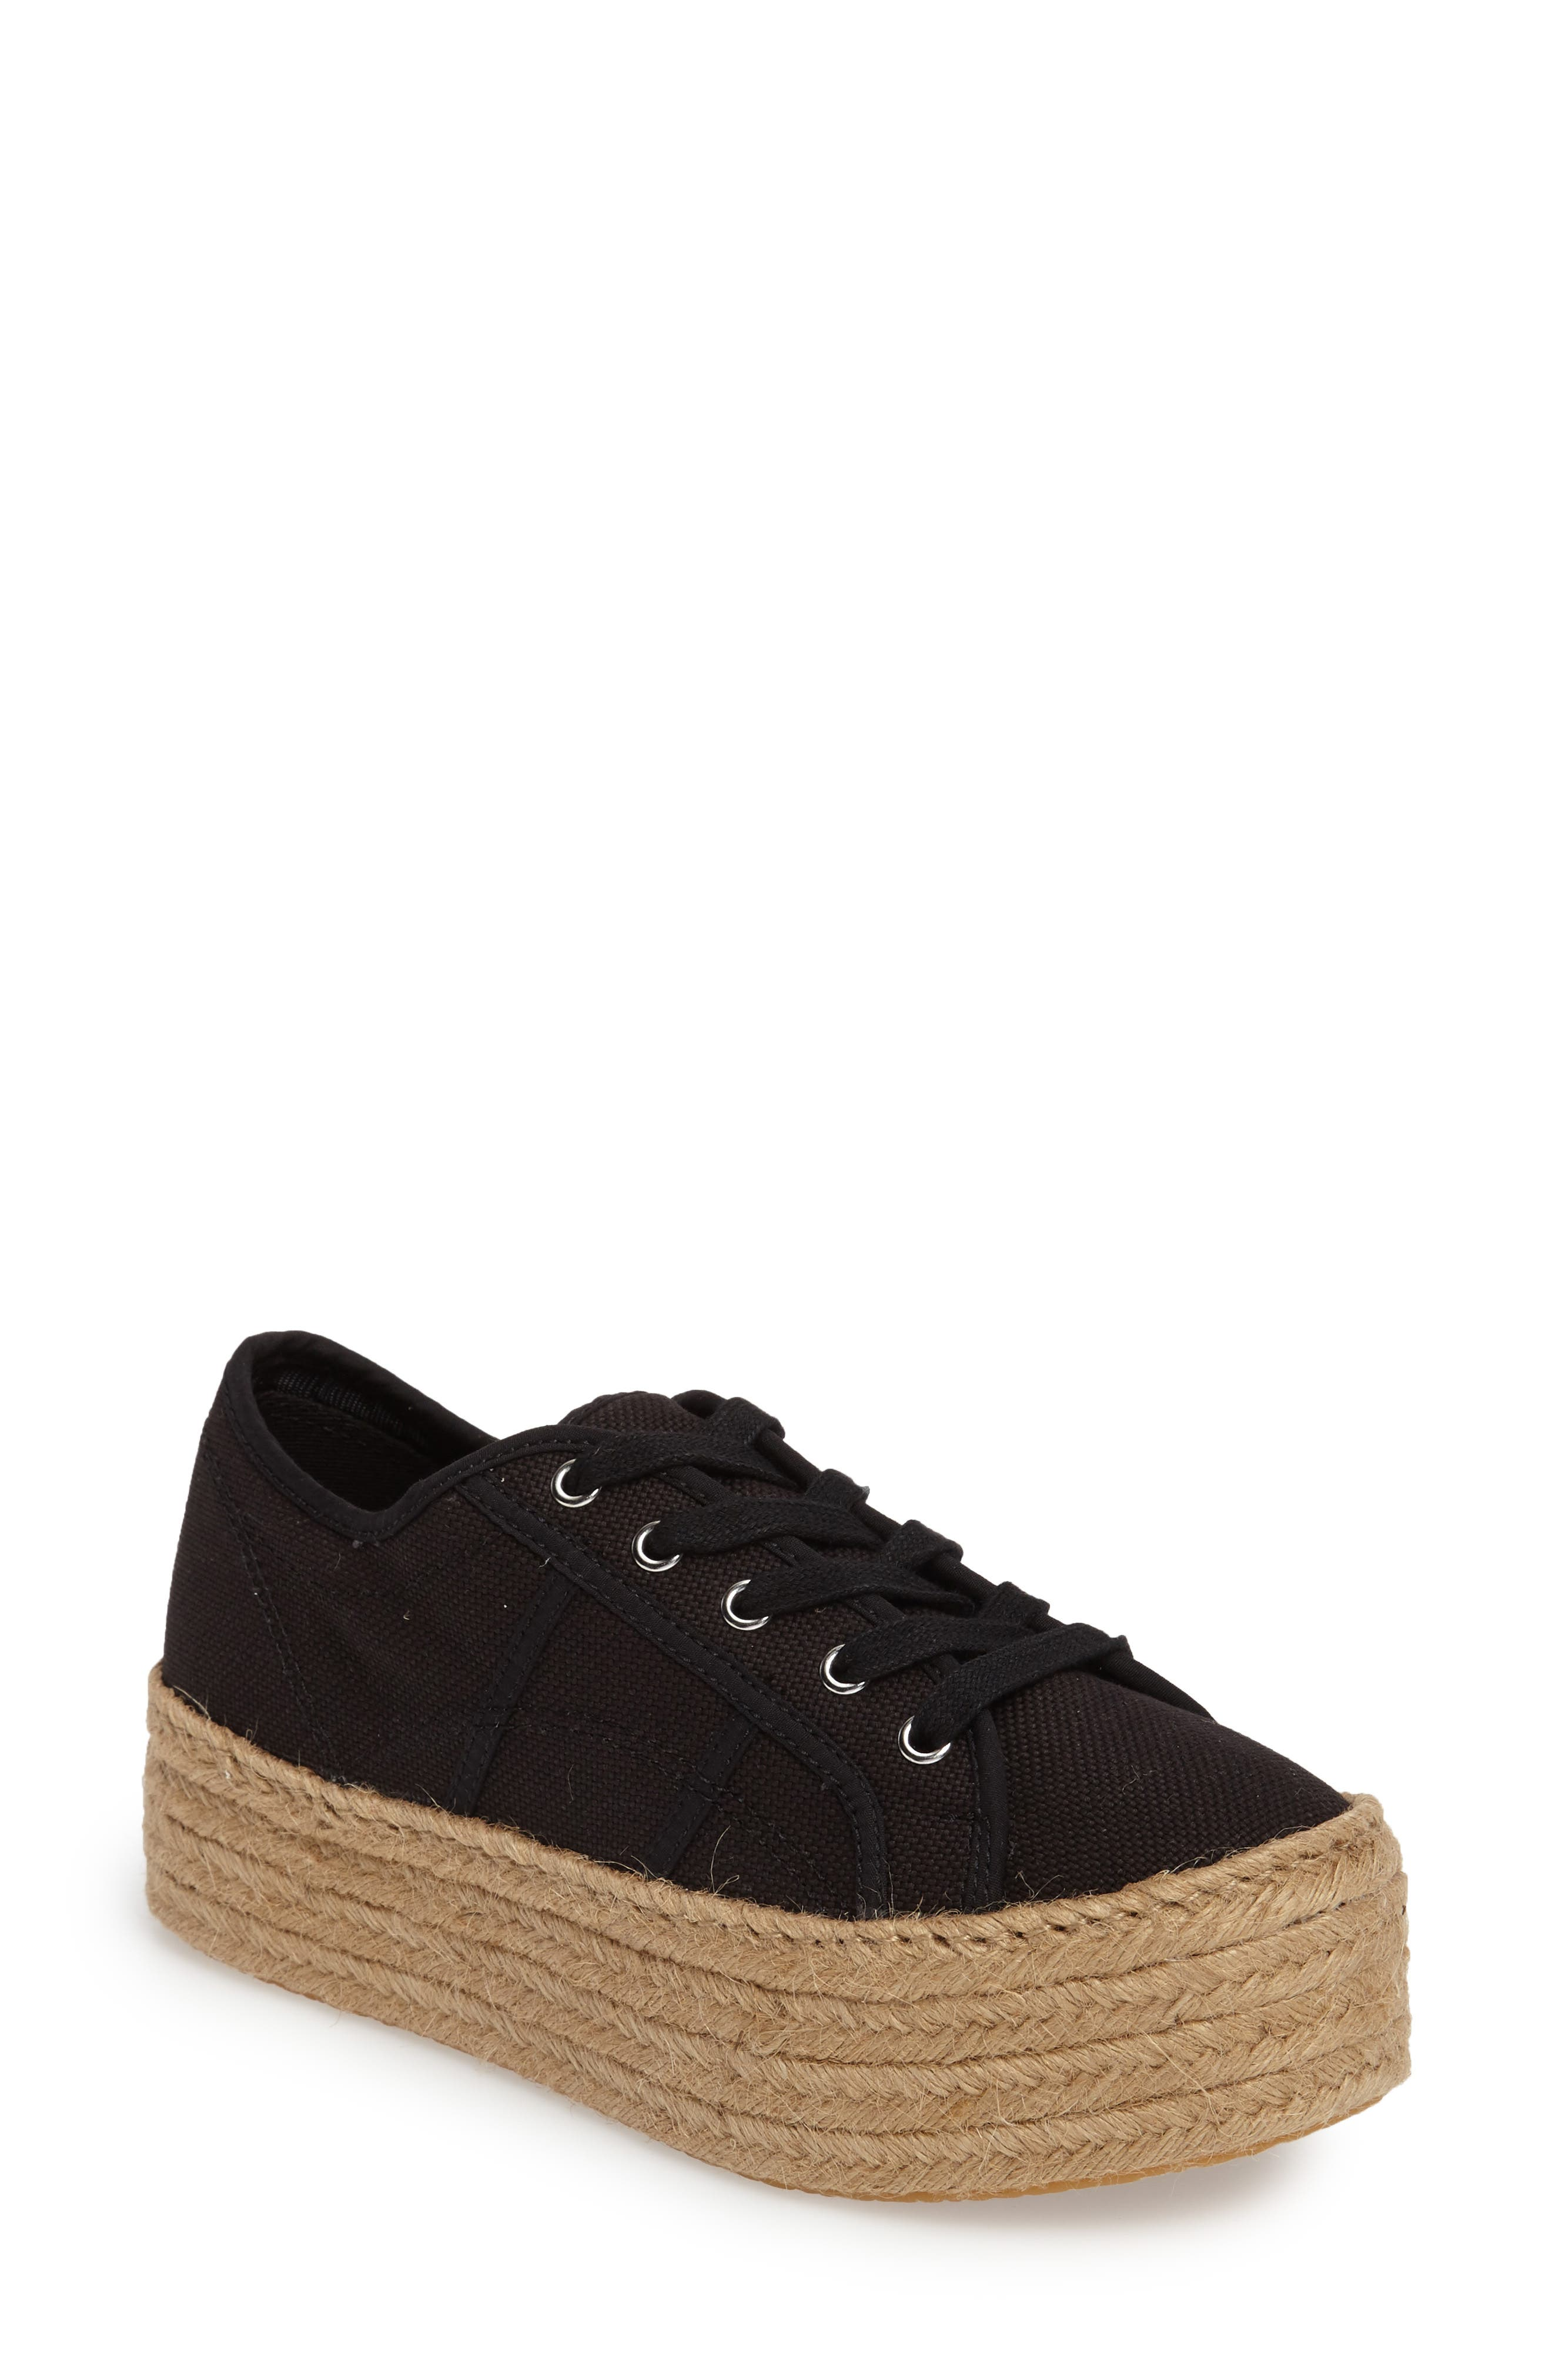 Hampton Platform Sneaker,                             Main thumbnail 1, color,                             007